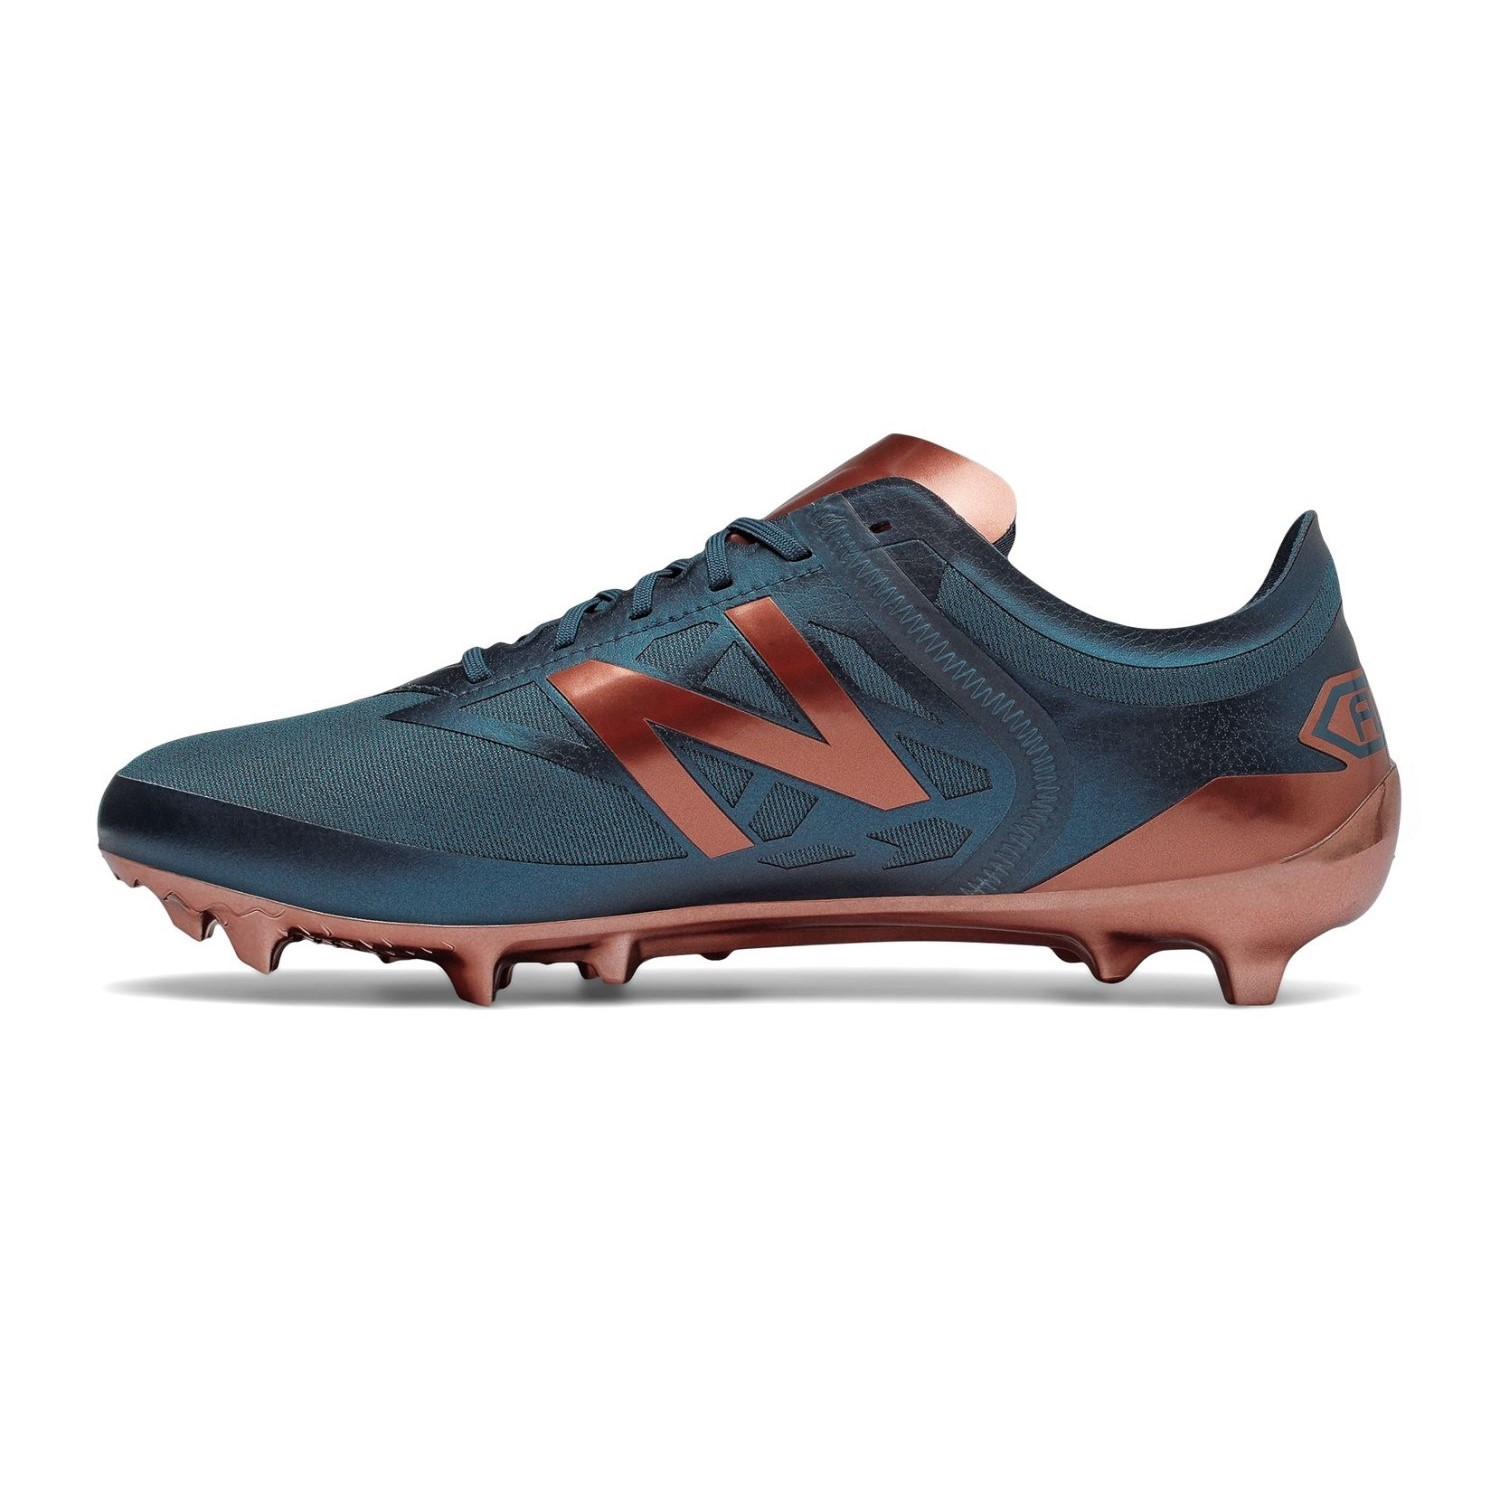 a7185742624 ... denmark new balance furon 3.0 conduction pack fg mens football boots  north sea copper 9c041 5a0be ...